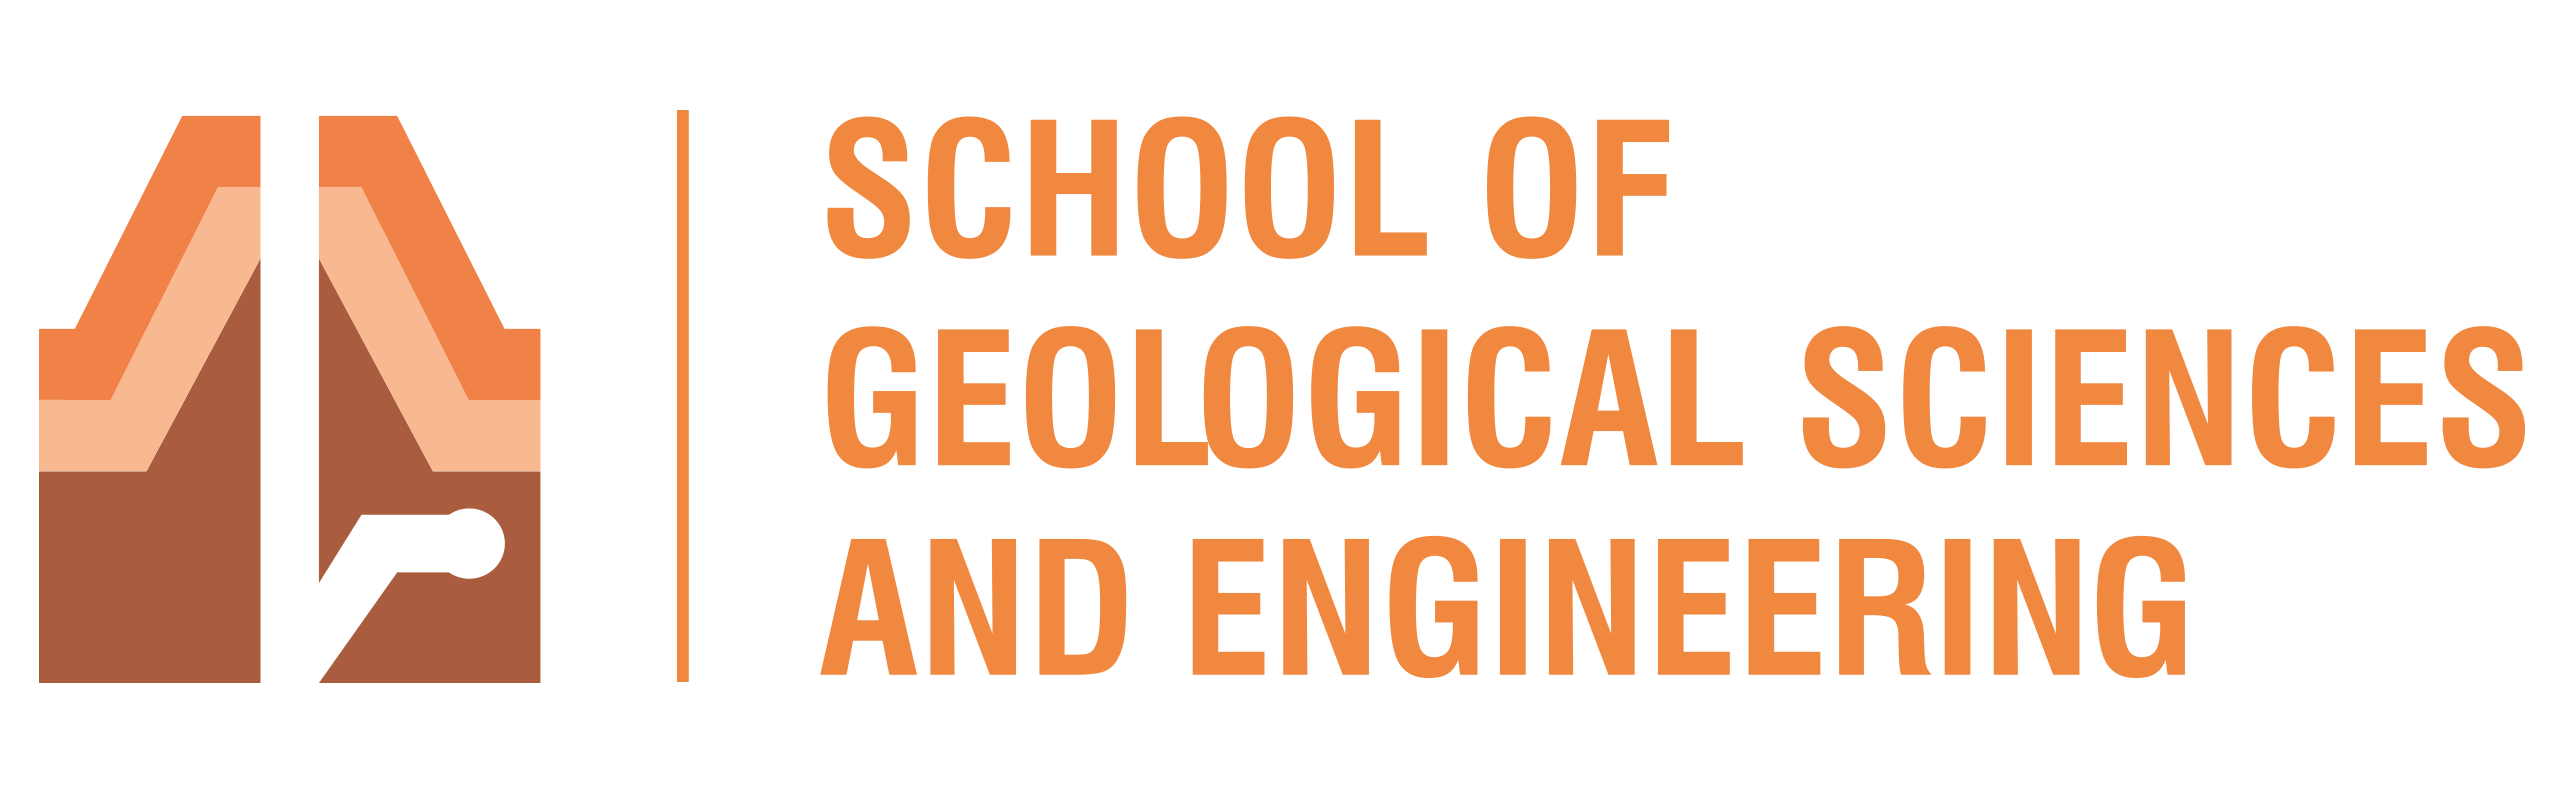 Geological Sciences and Engineering